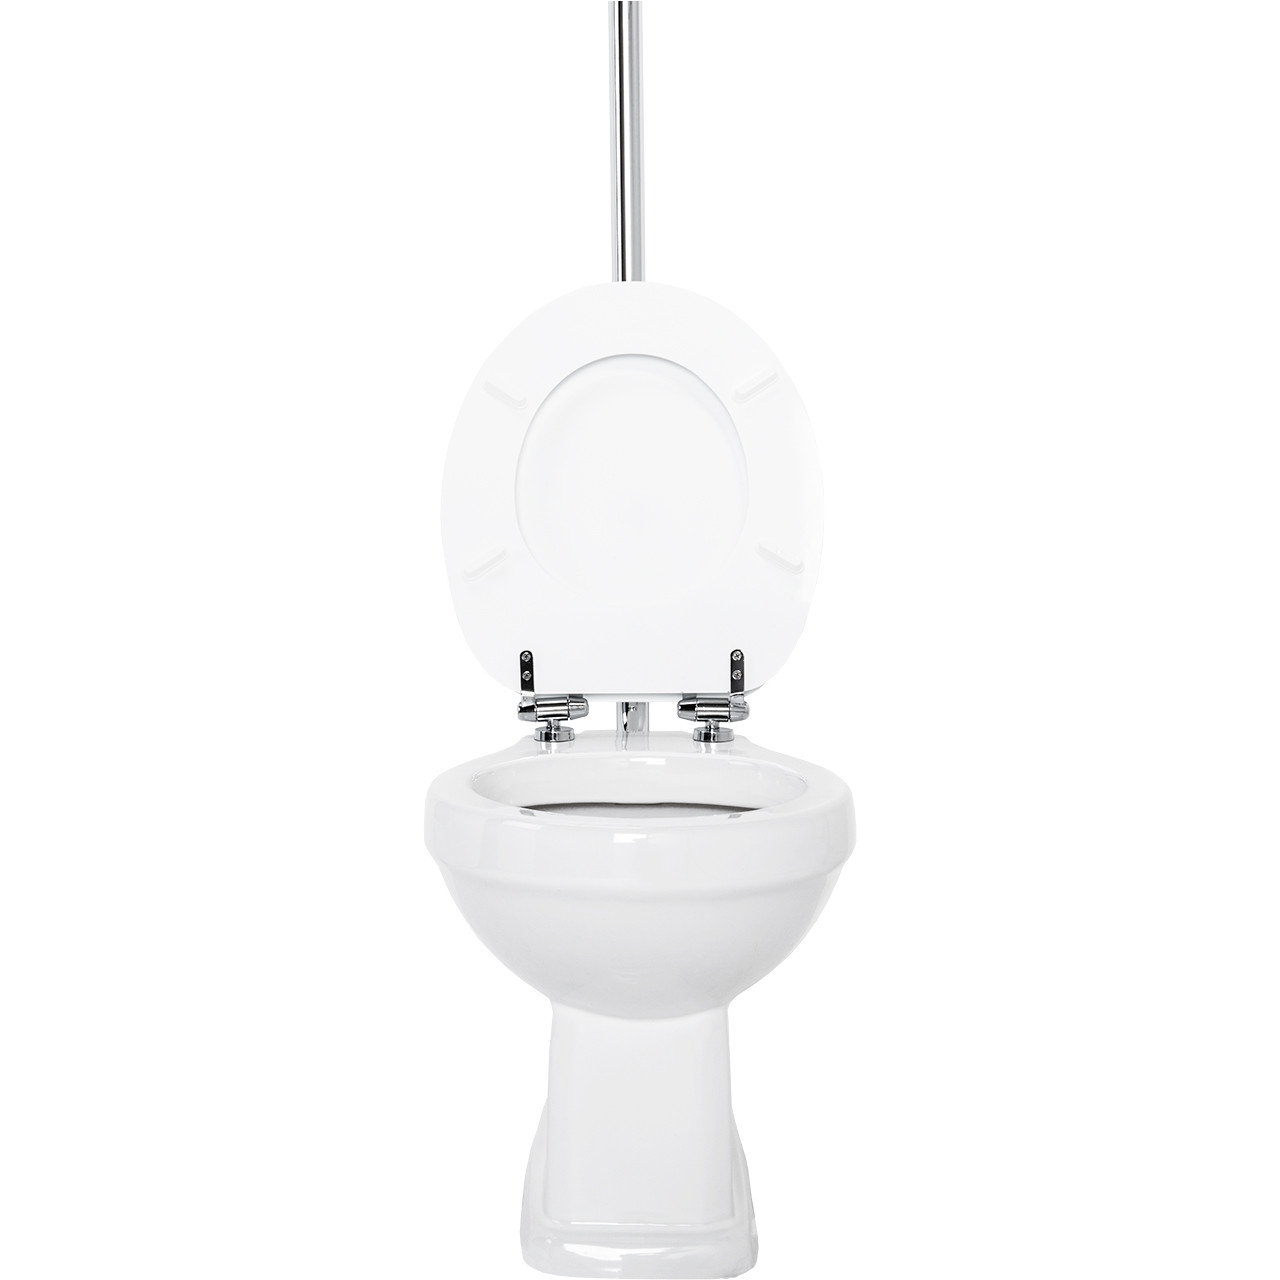 Windsor High Level WC inc Soft Close Seat Front